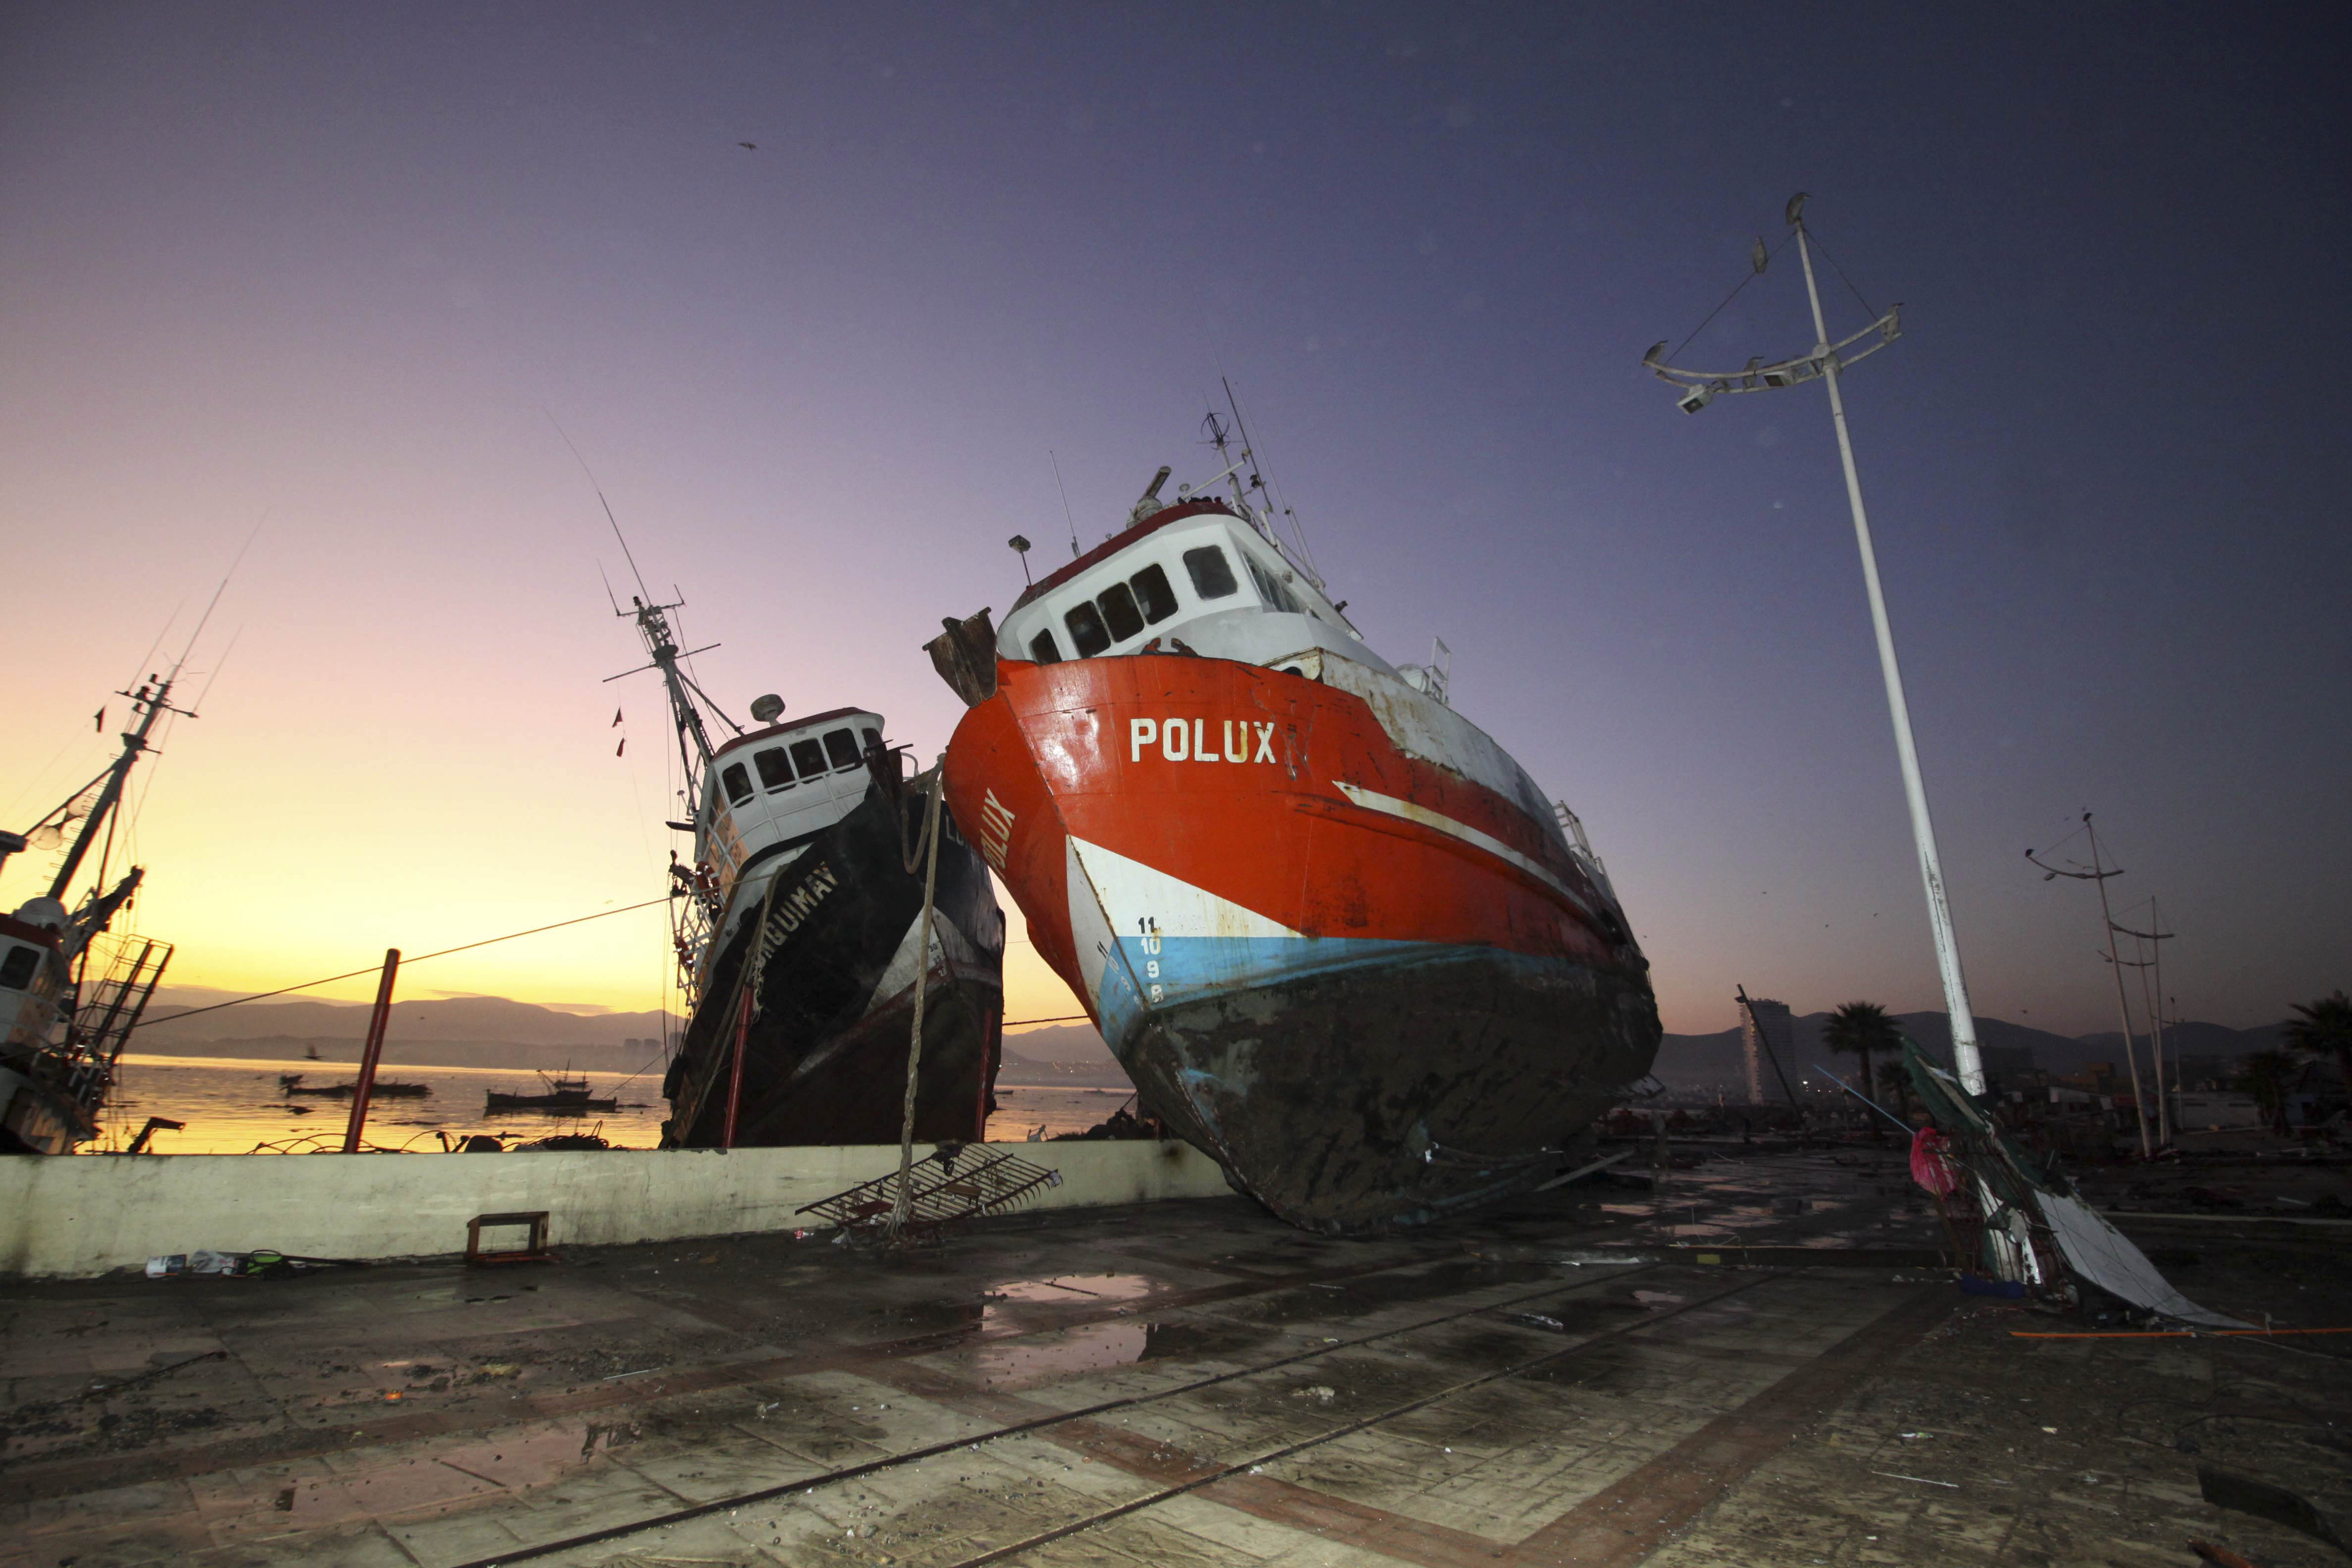 A boat stands on a dock after it was lifted by an earthquake-triggered tsunami in Coquimbo, Chile, Thursday, Sept. 17, 2015. Several coastal towns were flooded from small tsunami waves set off by late Wednesday's magnitude-8.3 earthquake, which shook the Earth so strongly that rumbles were felt across South America.